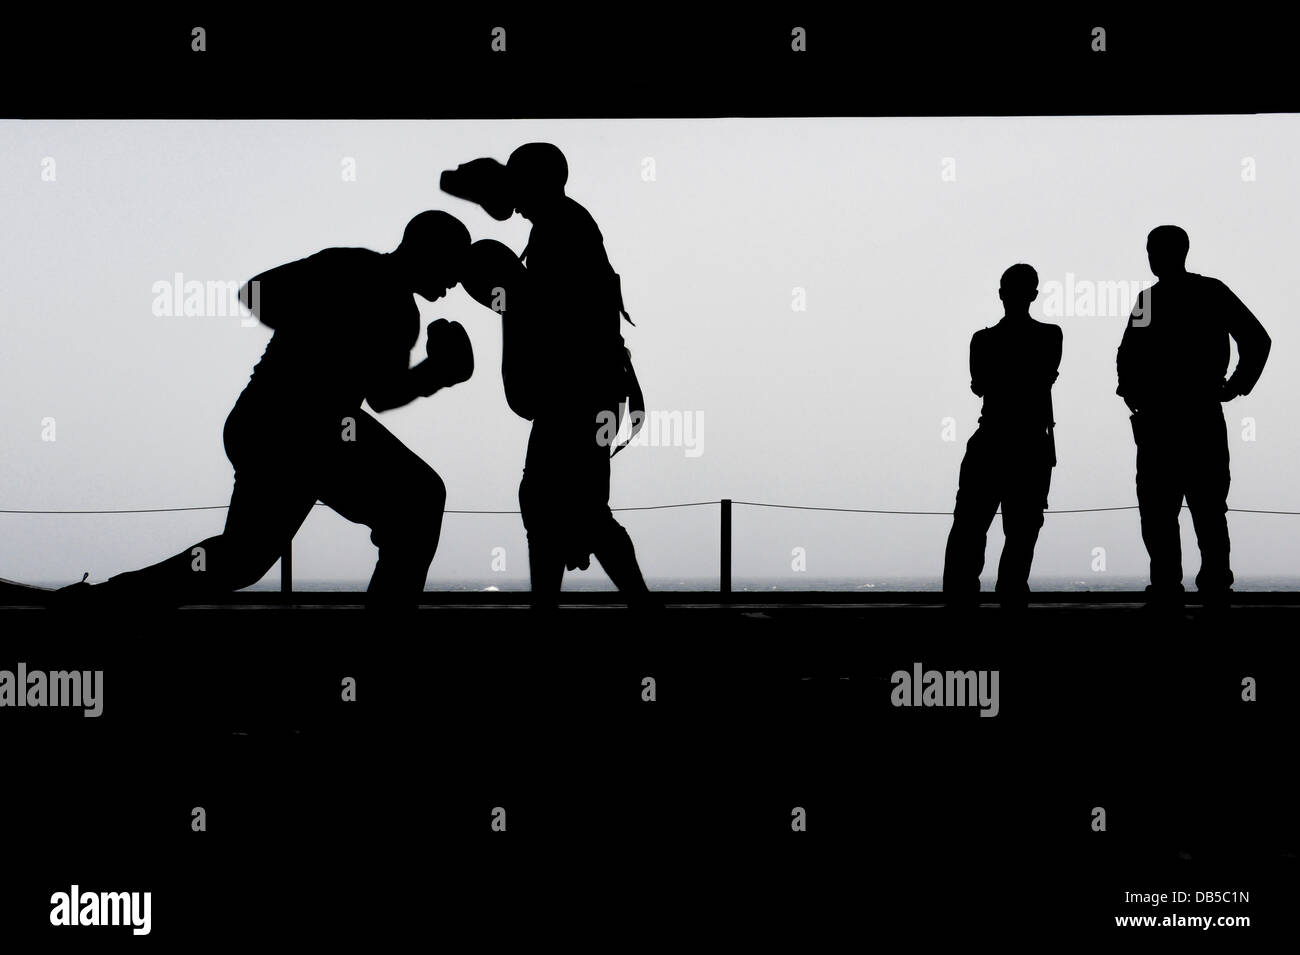 US Navy sailors practice boxing in the hangar bay aboard the aircraft carrier USS Nimitz silhouetted by a hazy sky - Stock Image